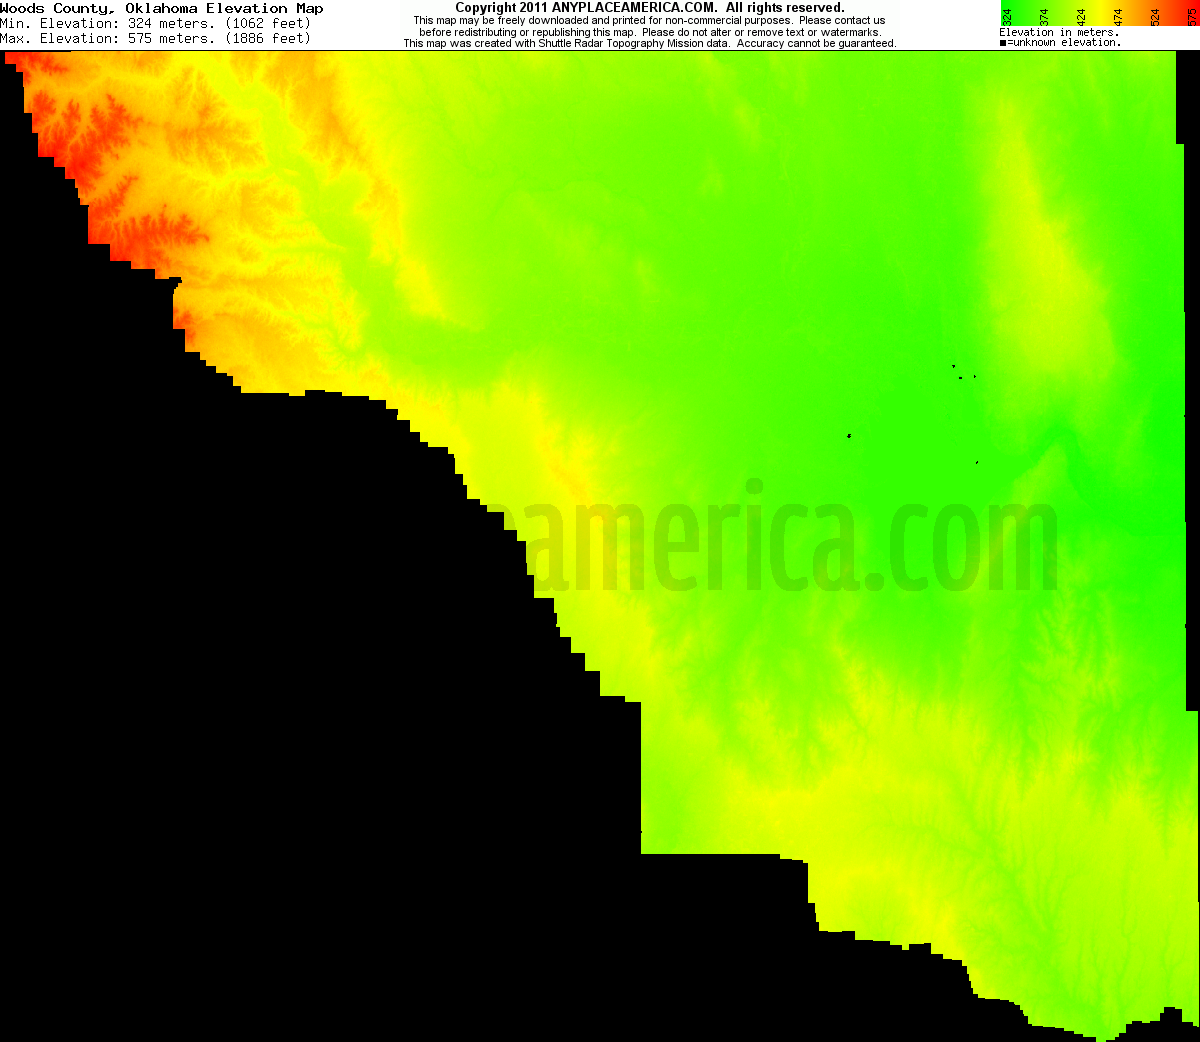 Wood Elevation Maps : Free woods county oklahoma topo maps elevations